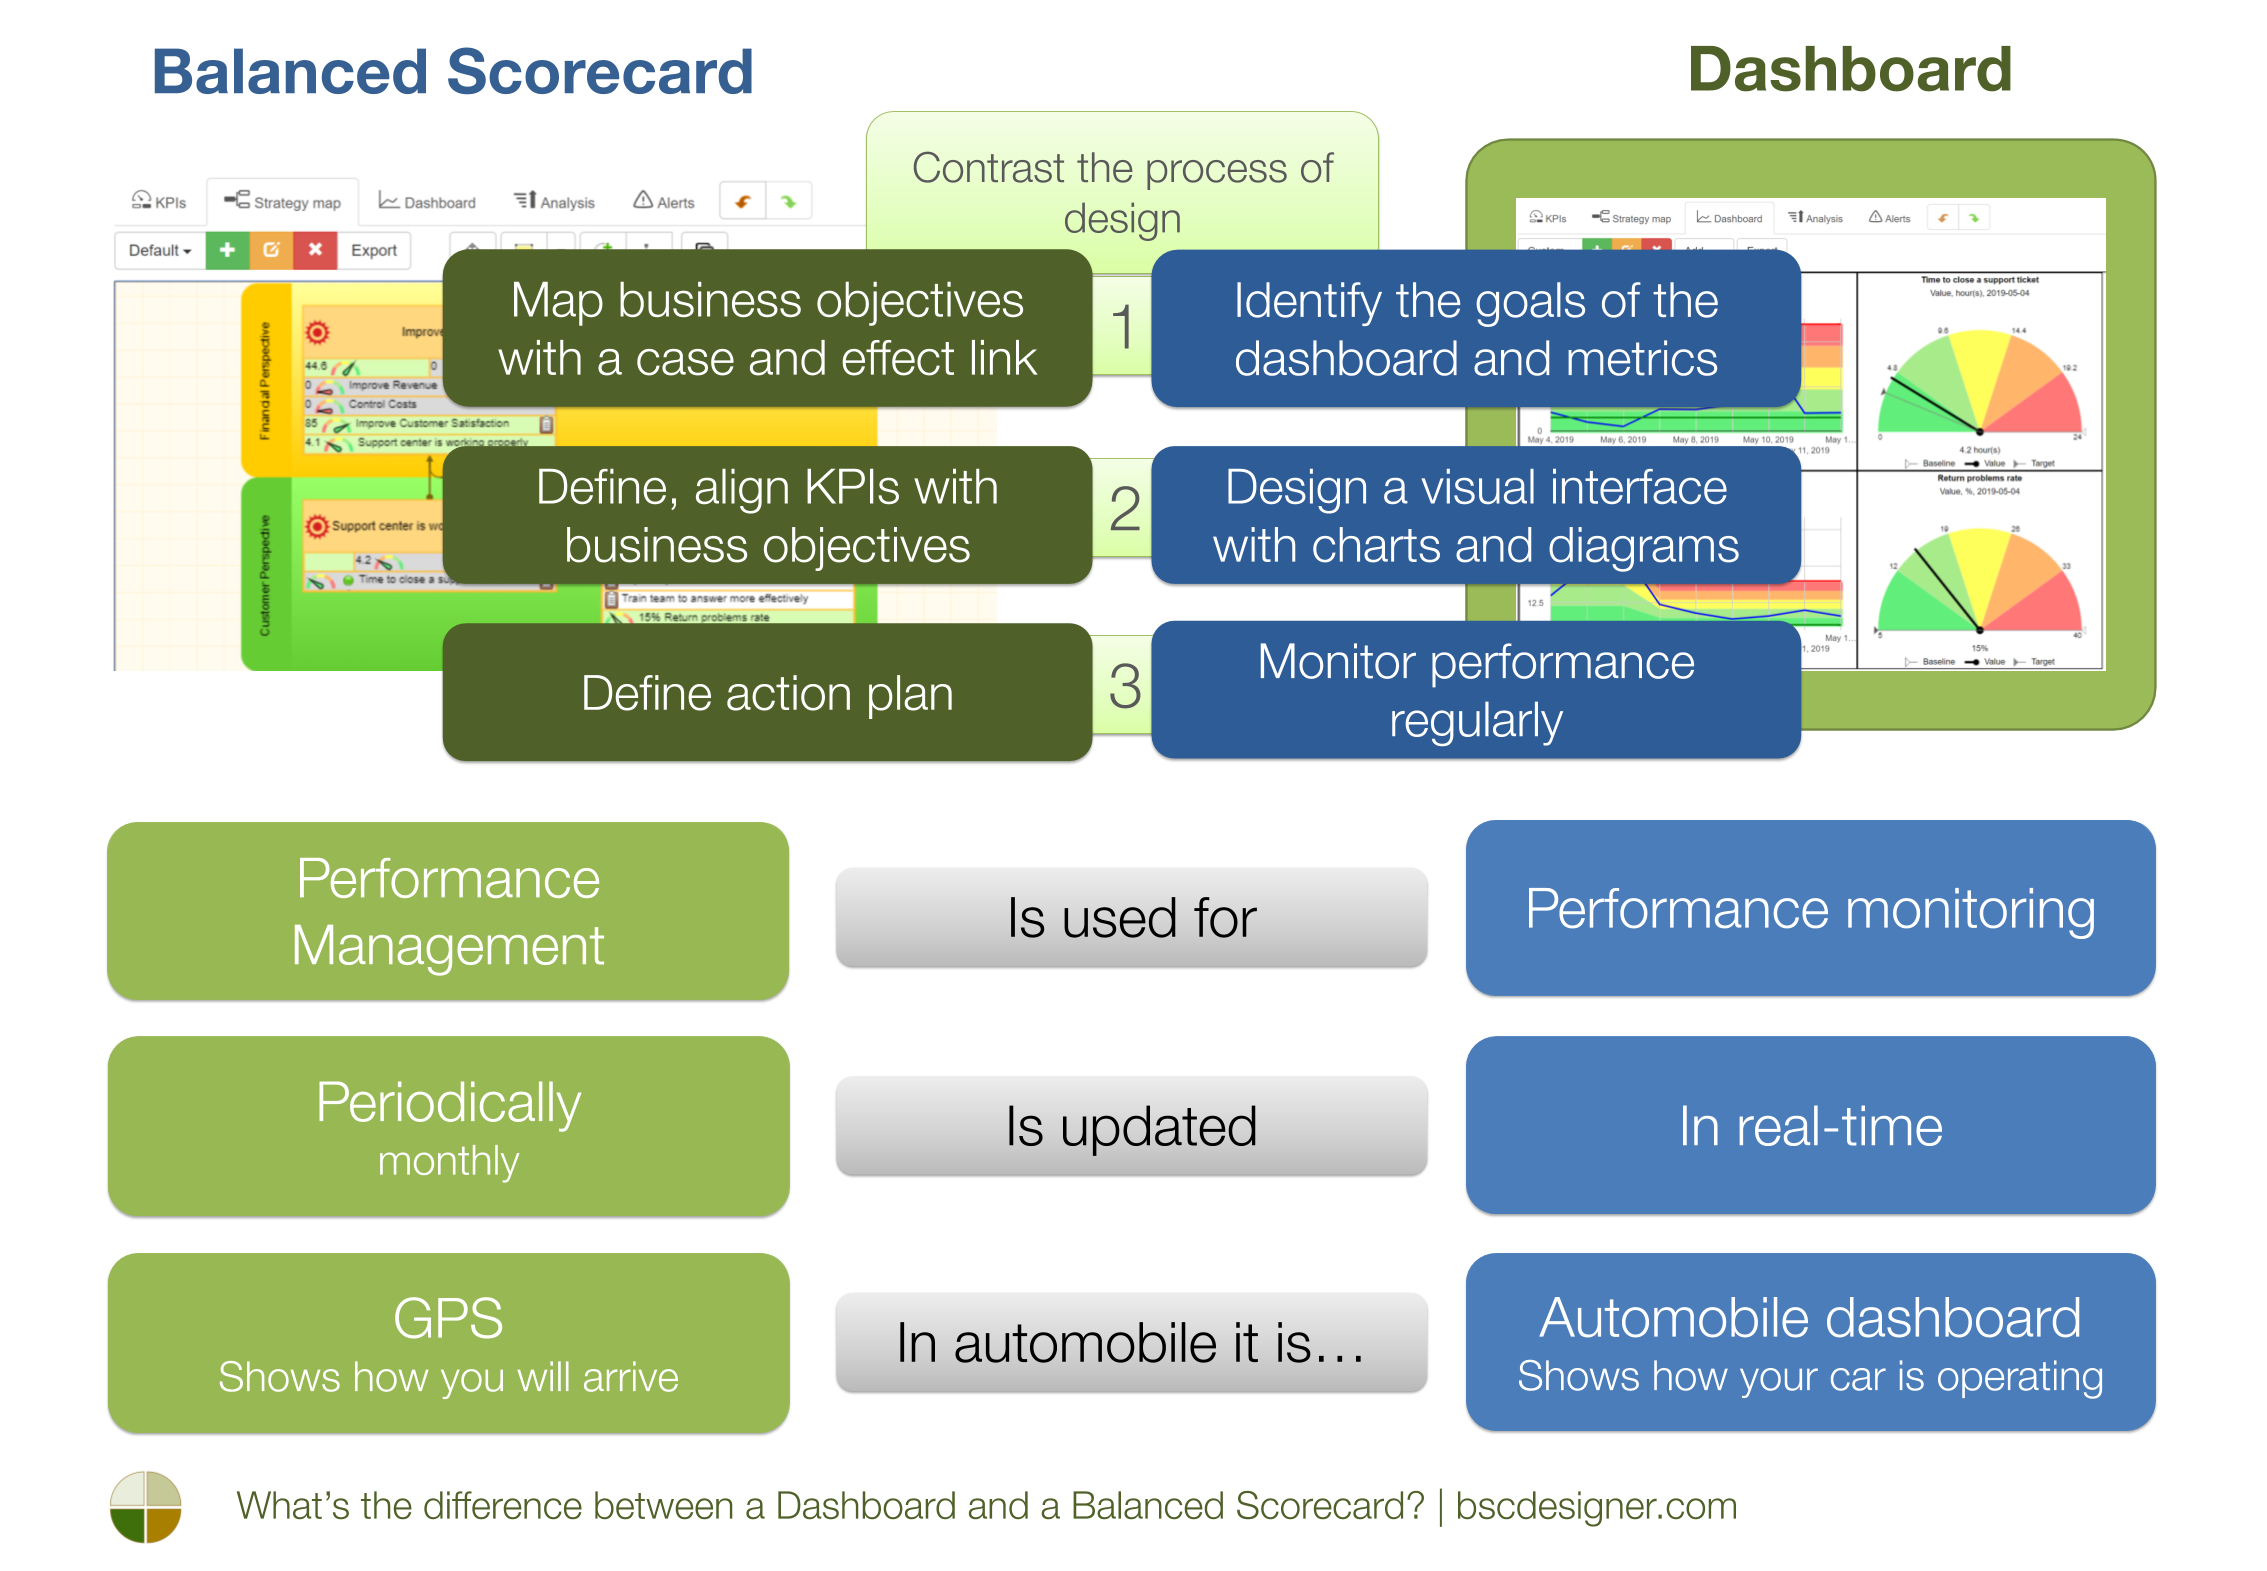 What's the difference between a Dashboard and a Balanced Scorecard?